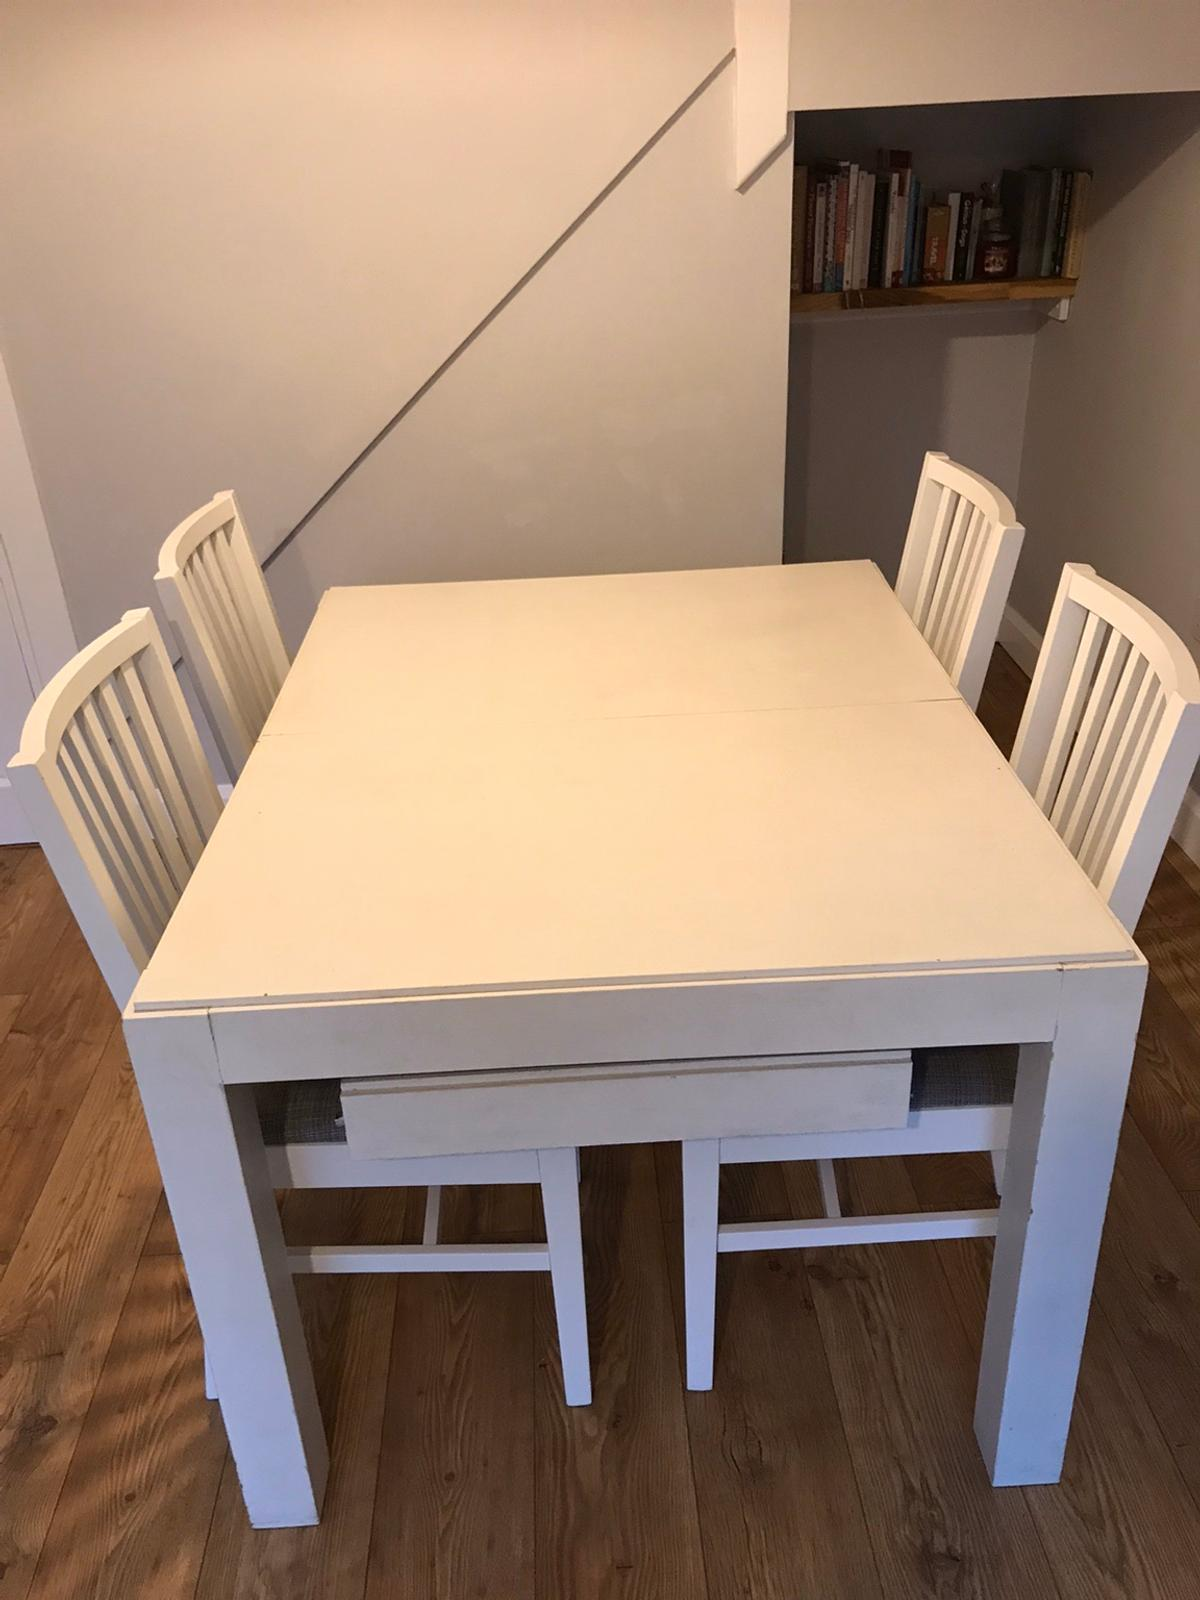 Habitat Dining Room Table In Tn9 Malling For 60 00 For Sale Shpock